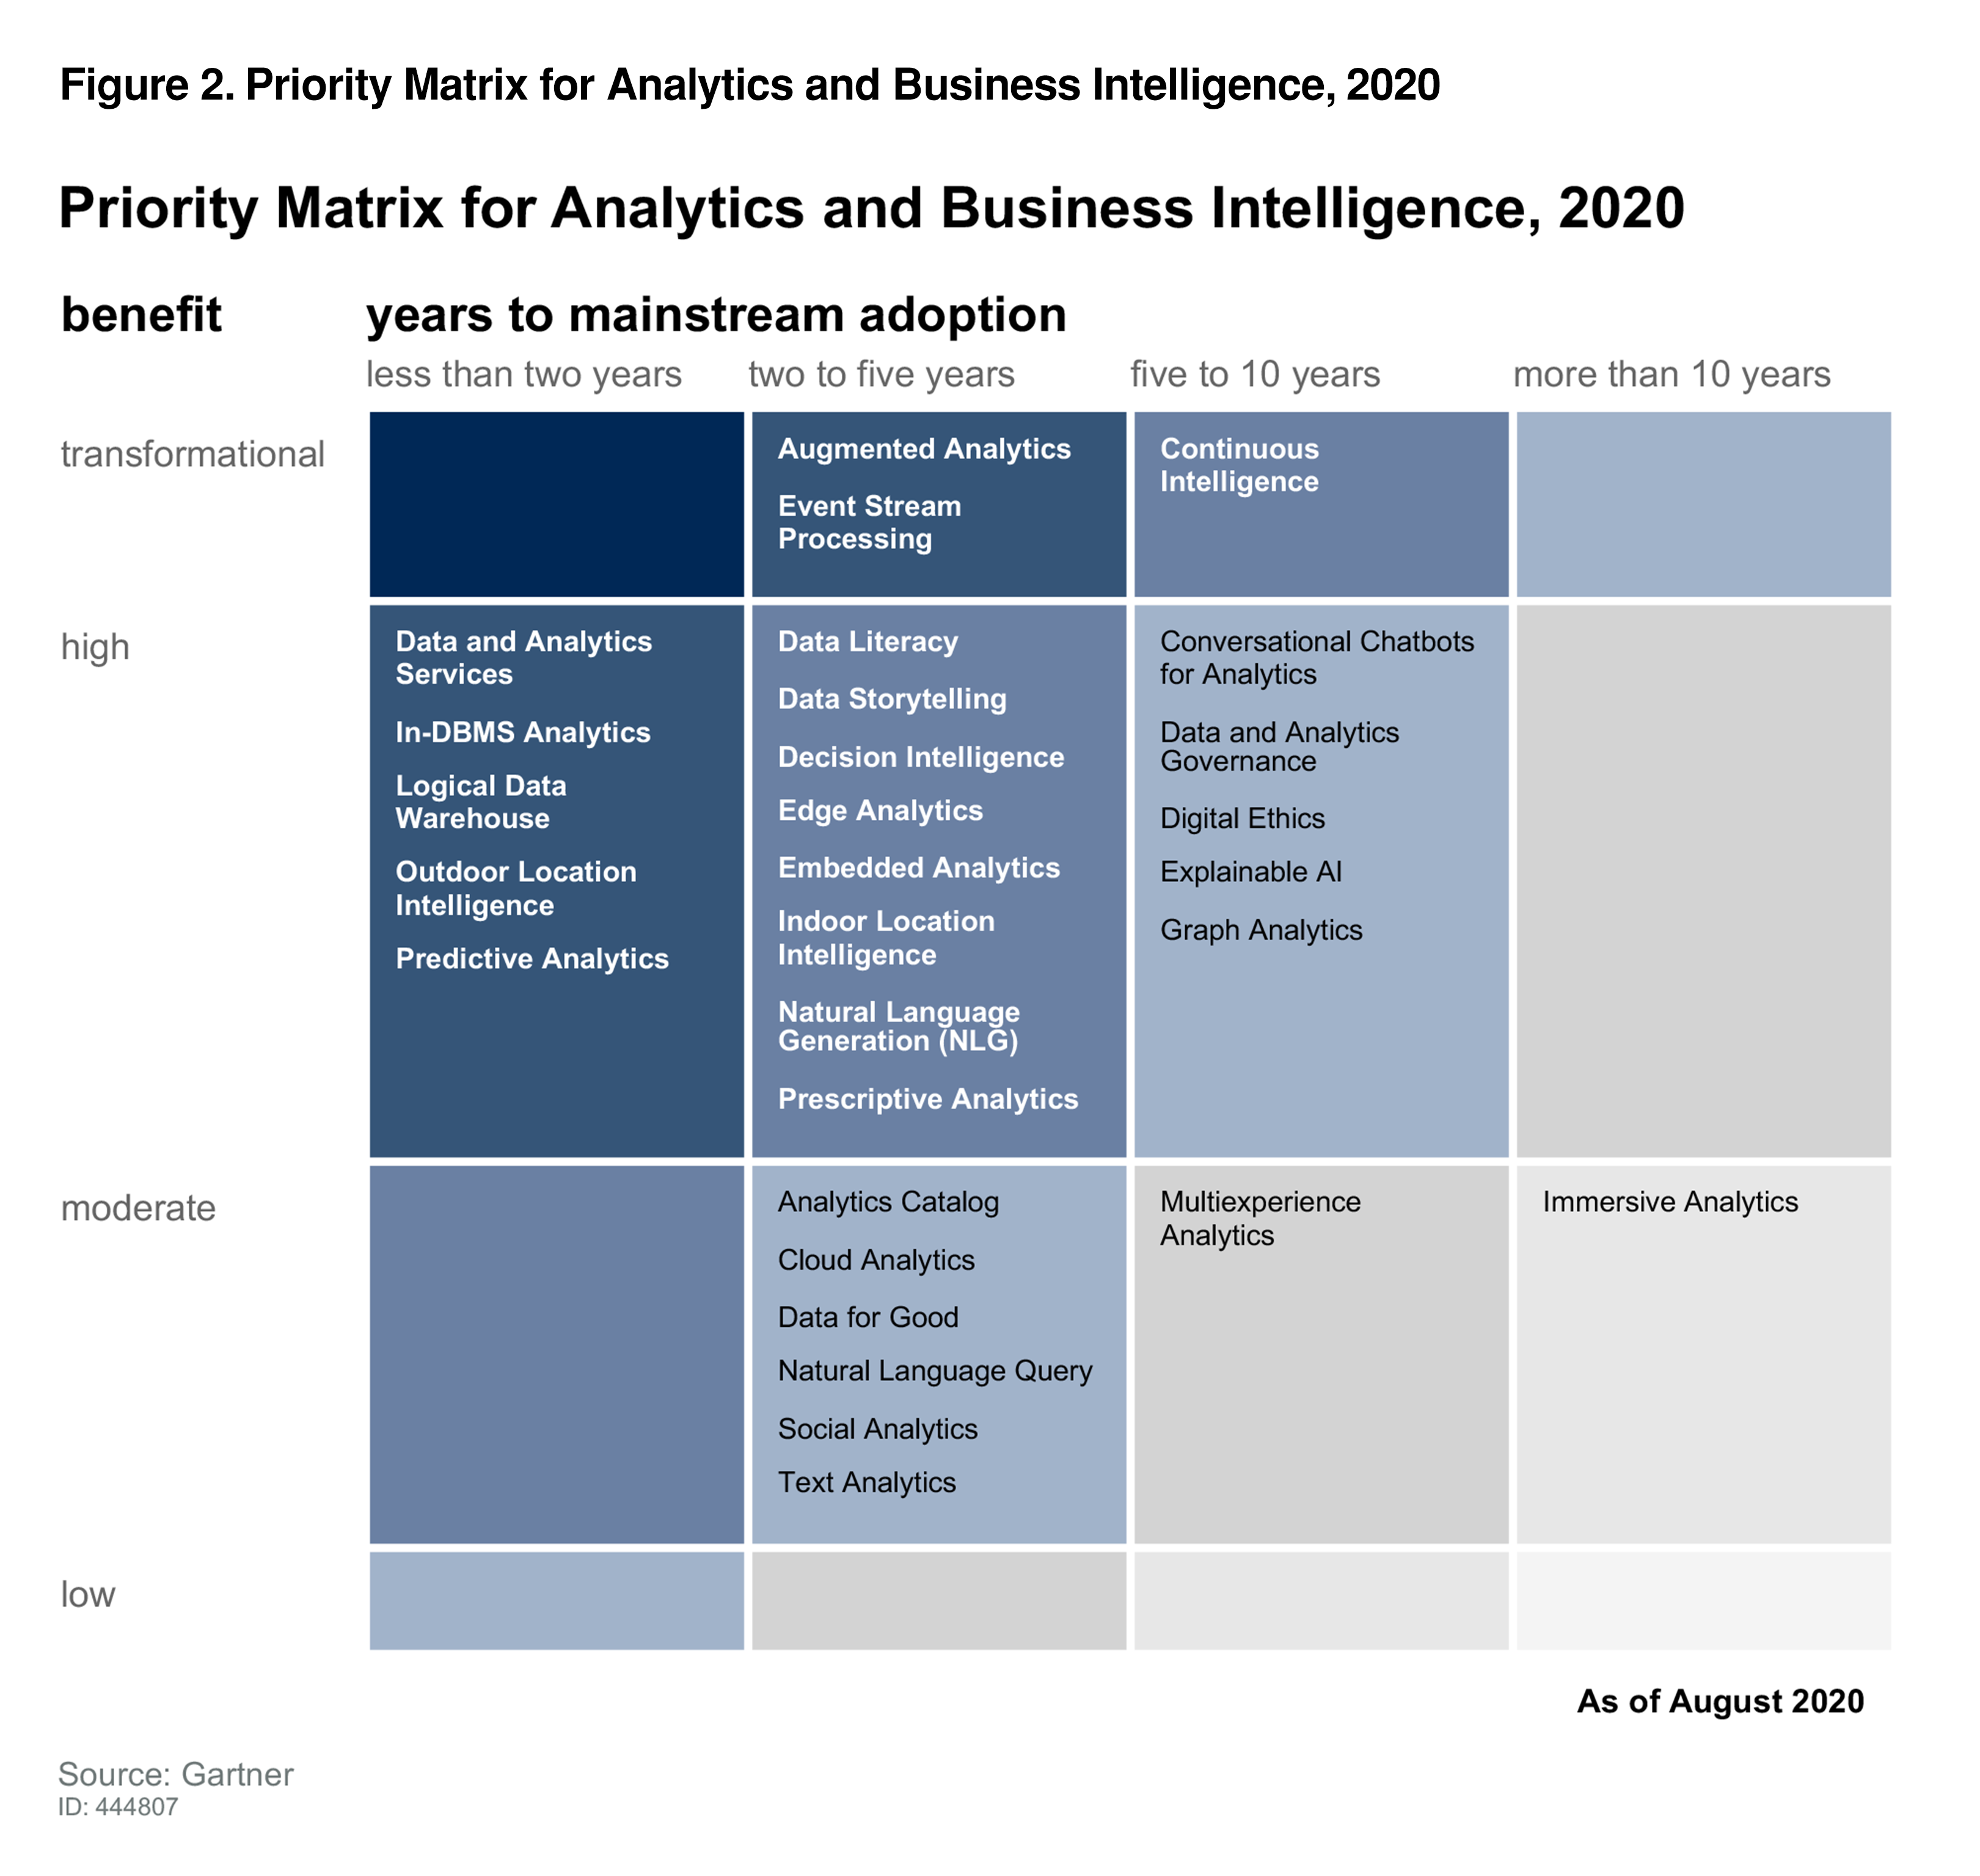 Priority Matrix for Analytics and Business Intelligence, 2020